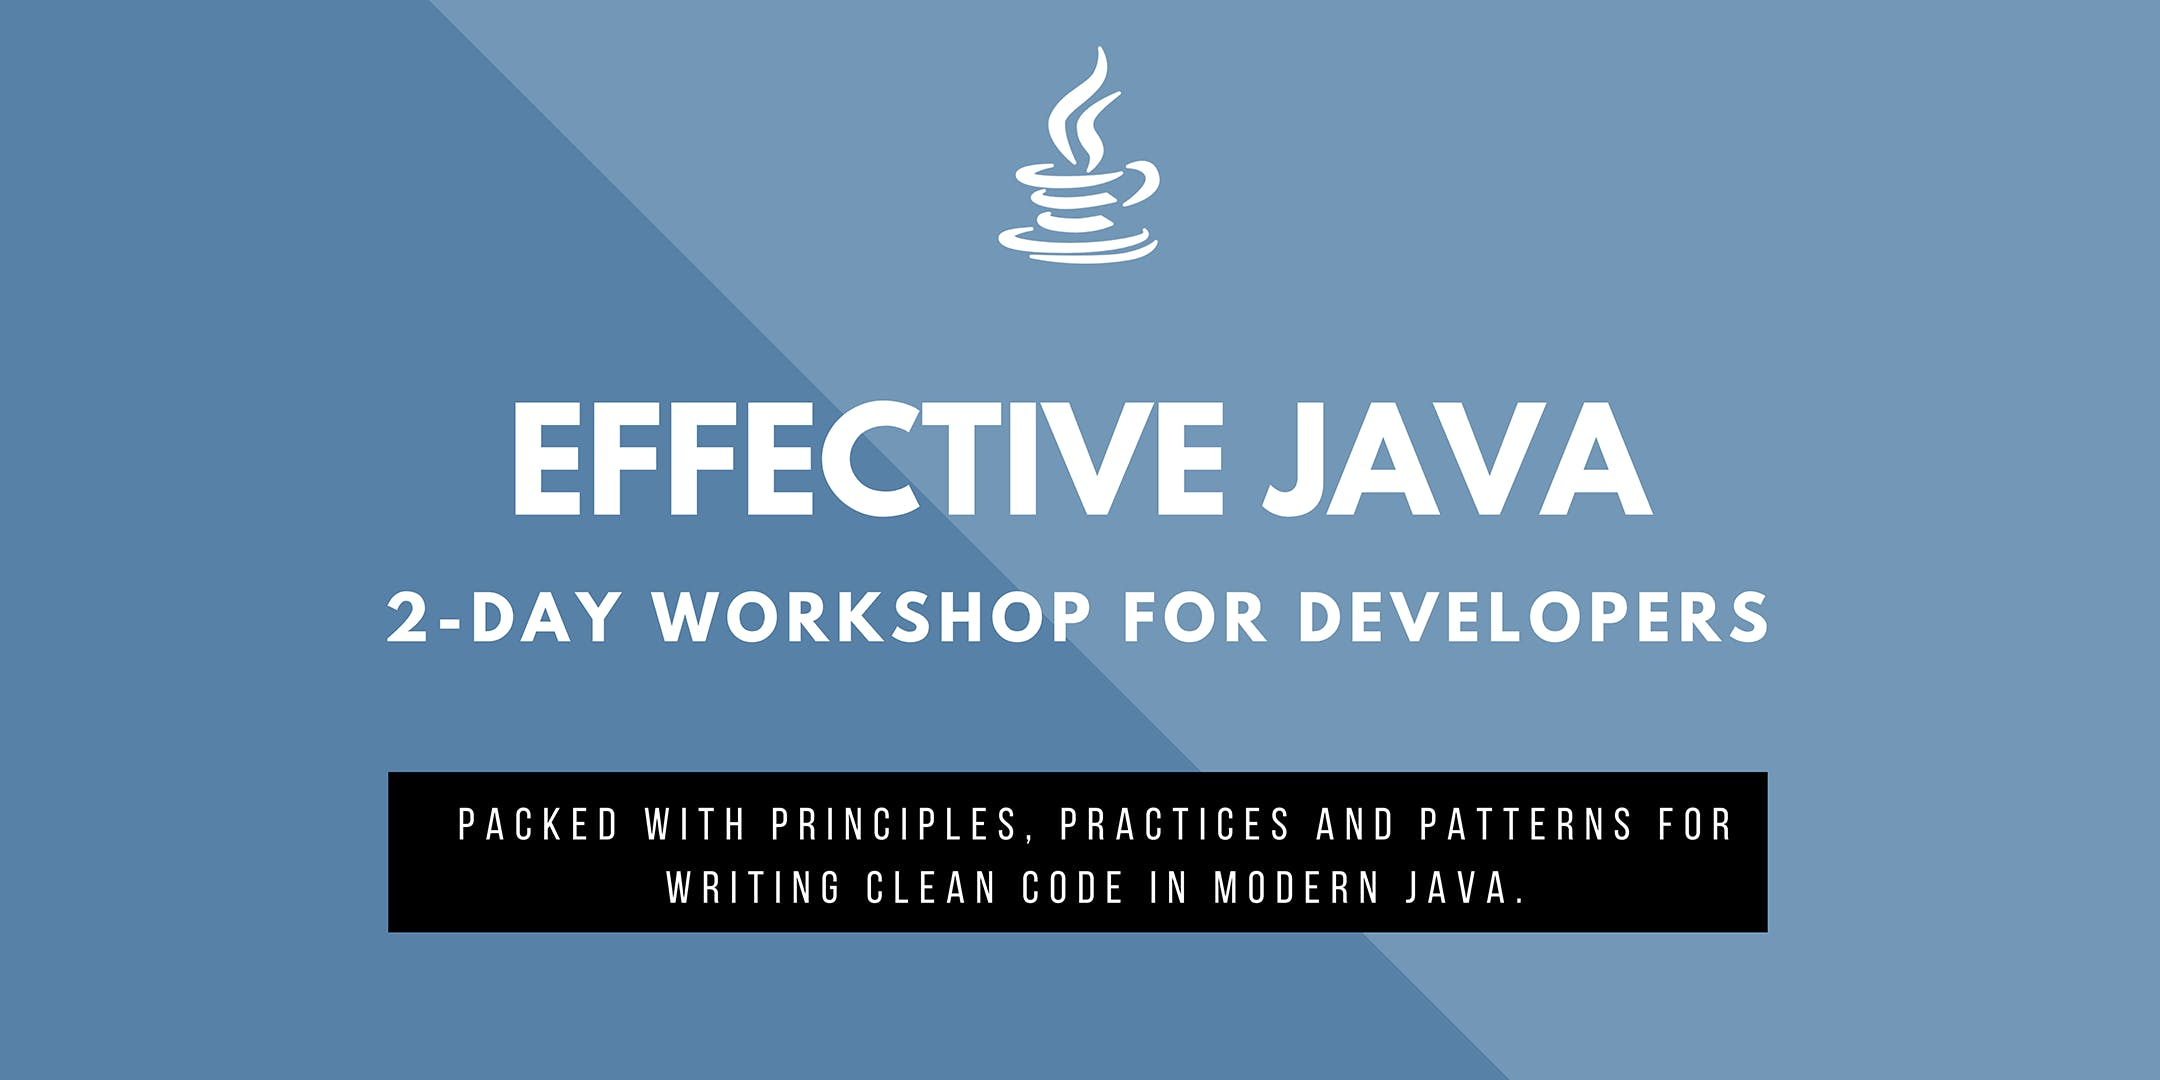 TOP Effective Java 9 for Developers (Dsseldorf)